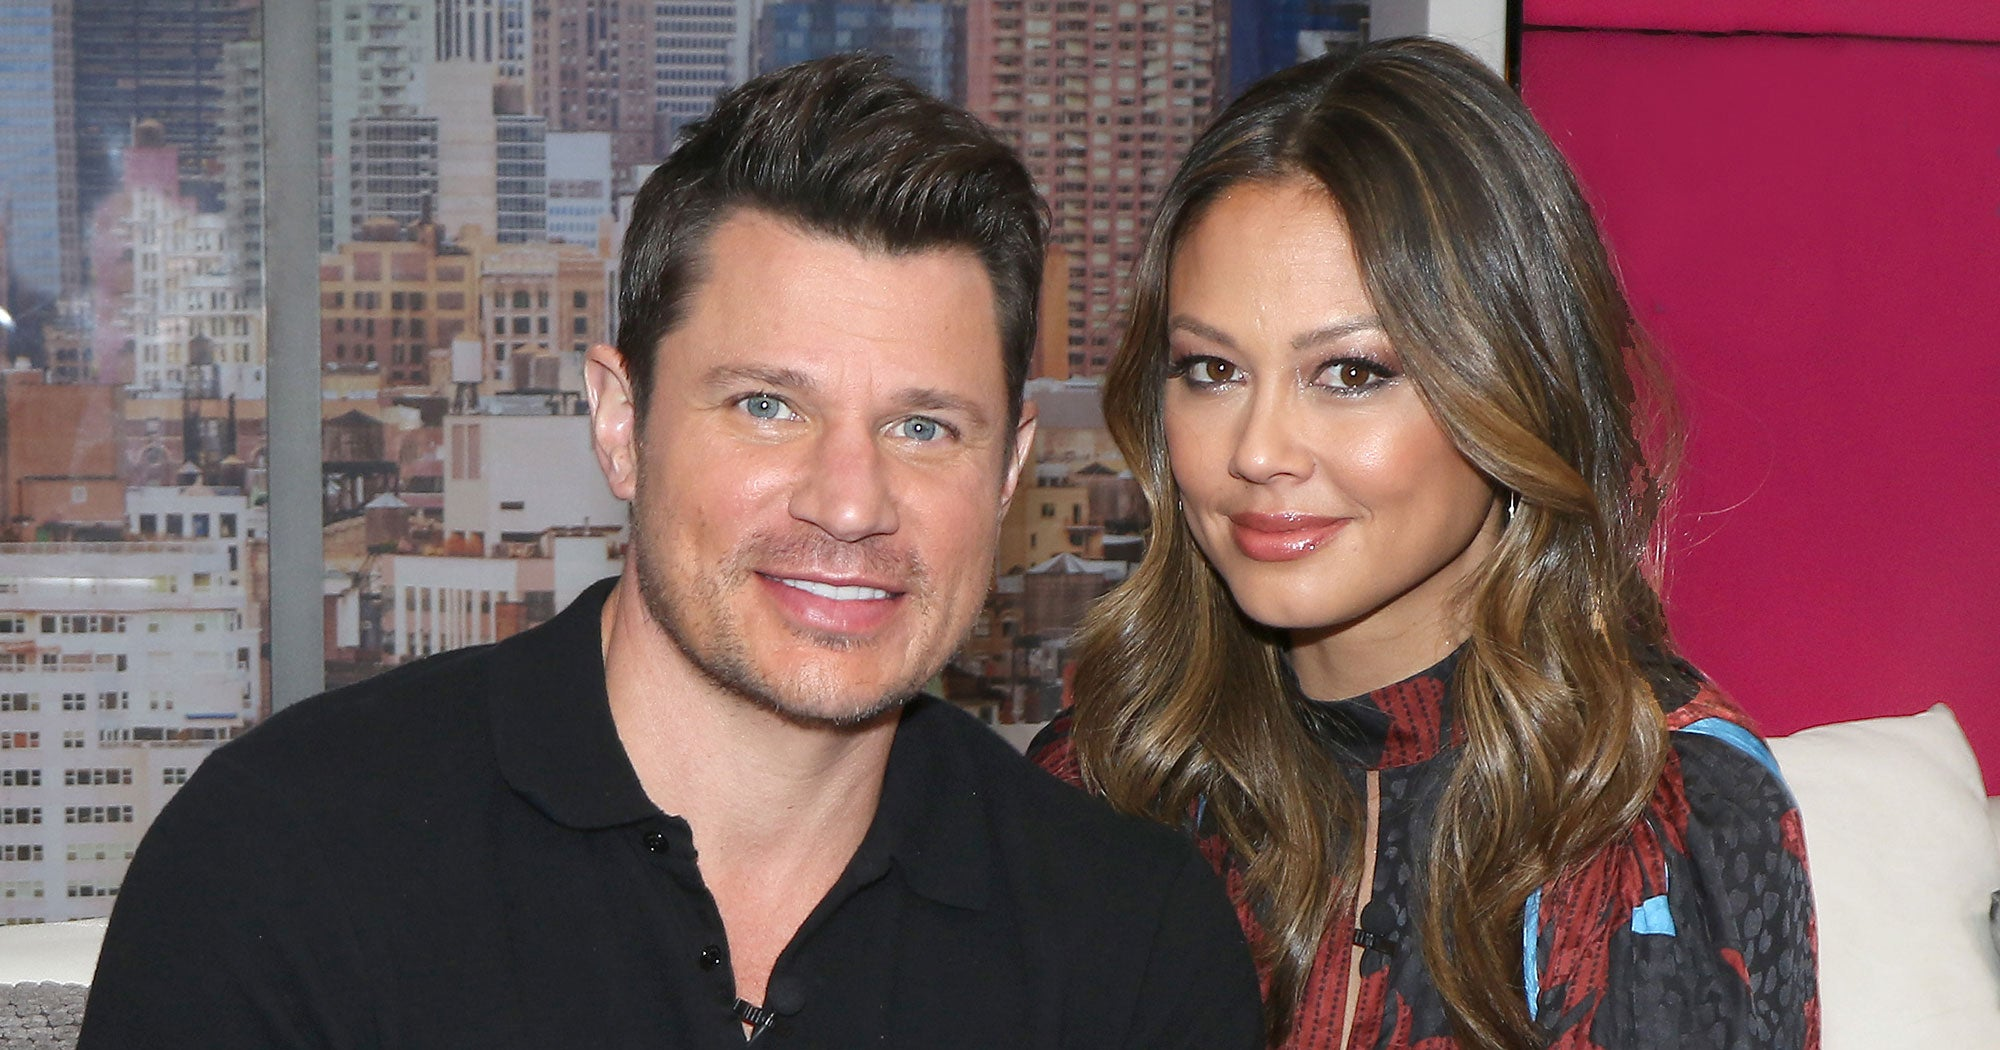 Nick Vanessa Lachey's Relationship Timeline Shows They're Perfect Hosts For Love Is Blind